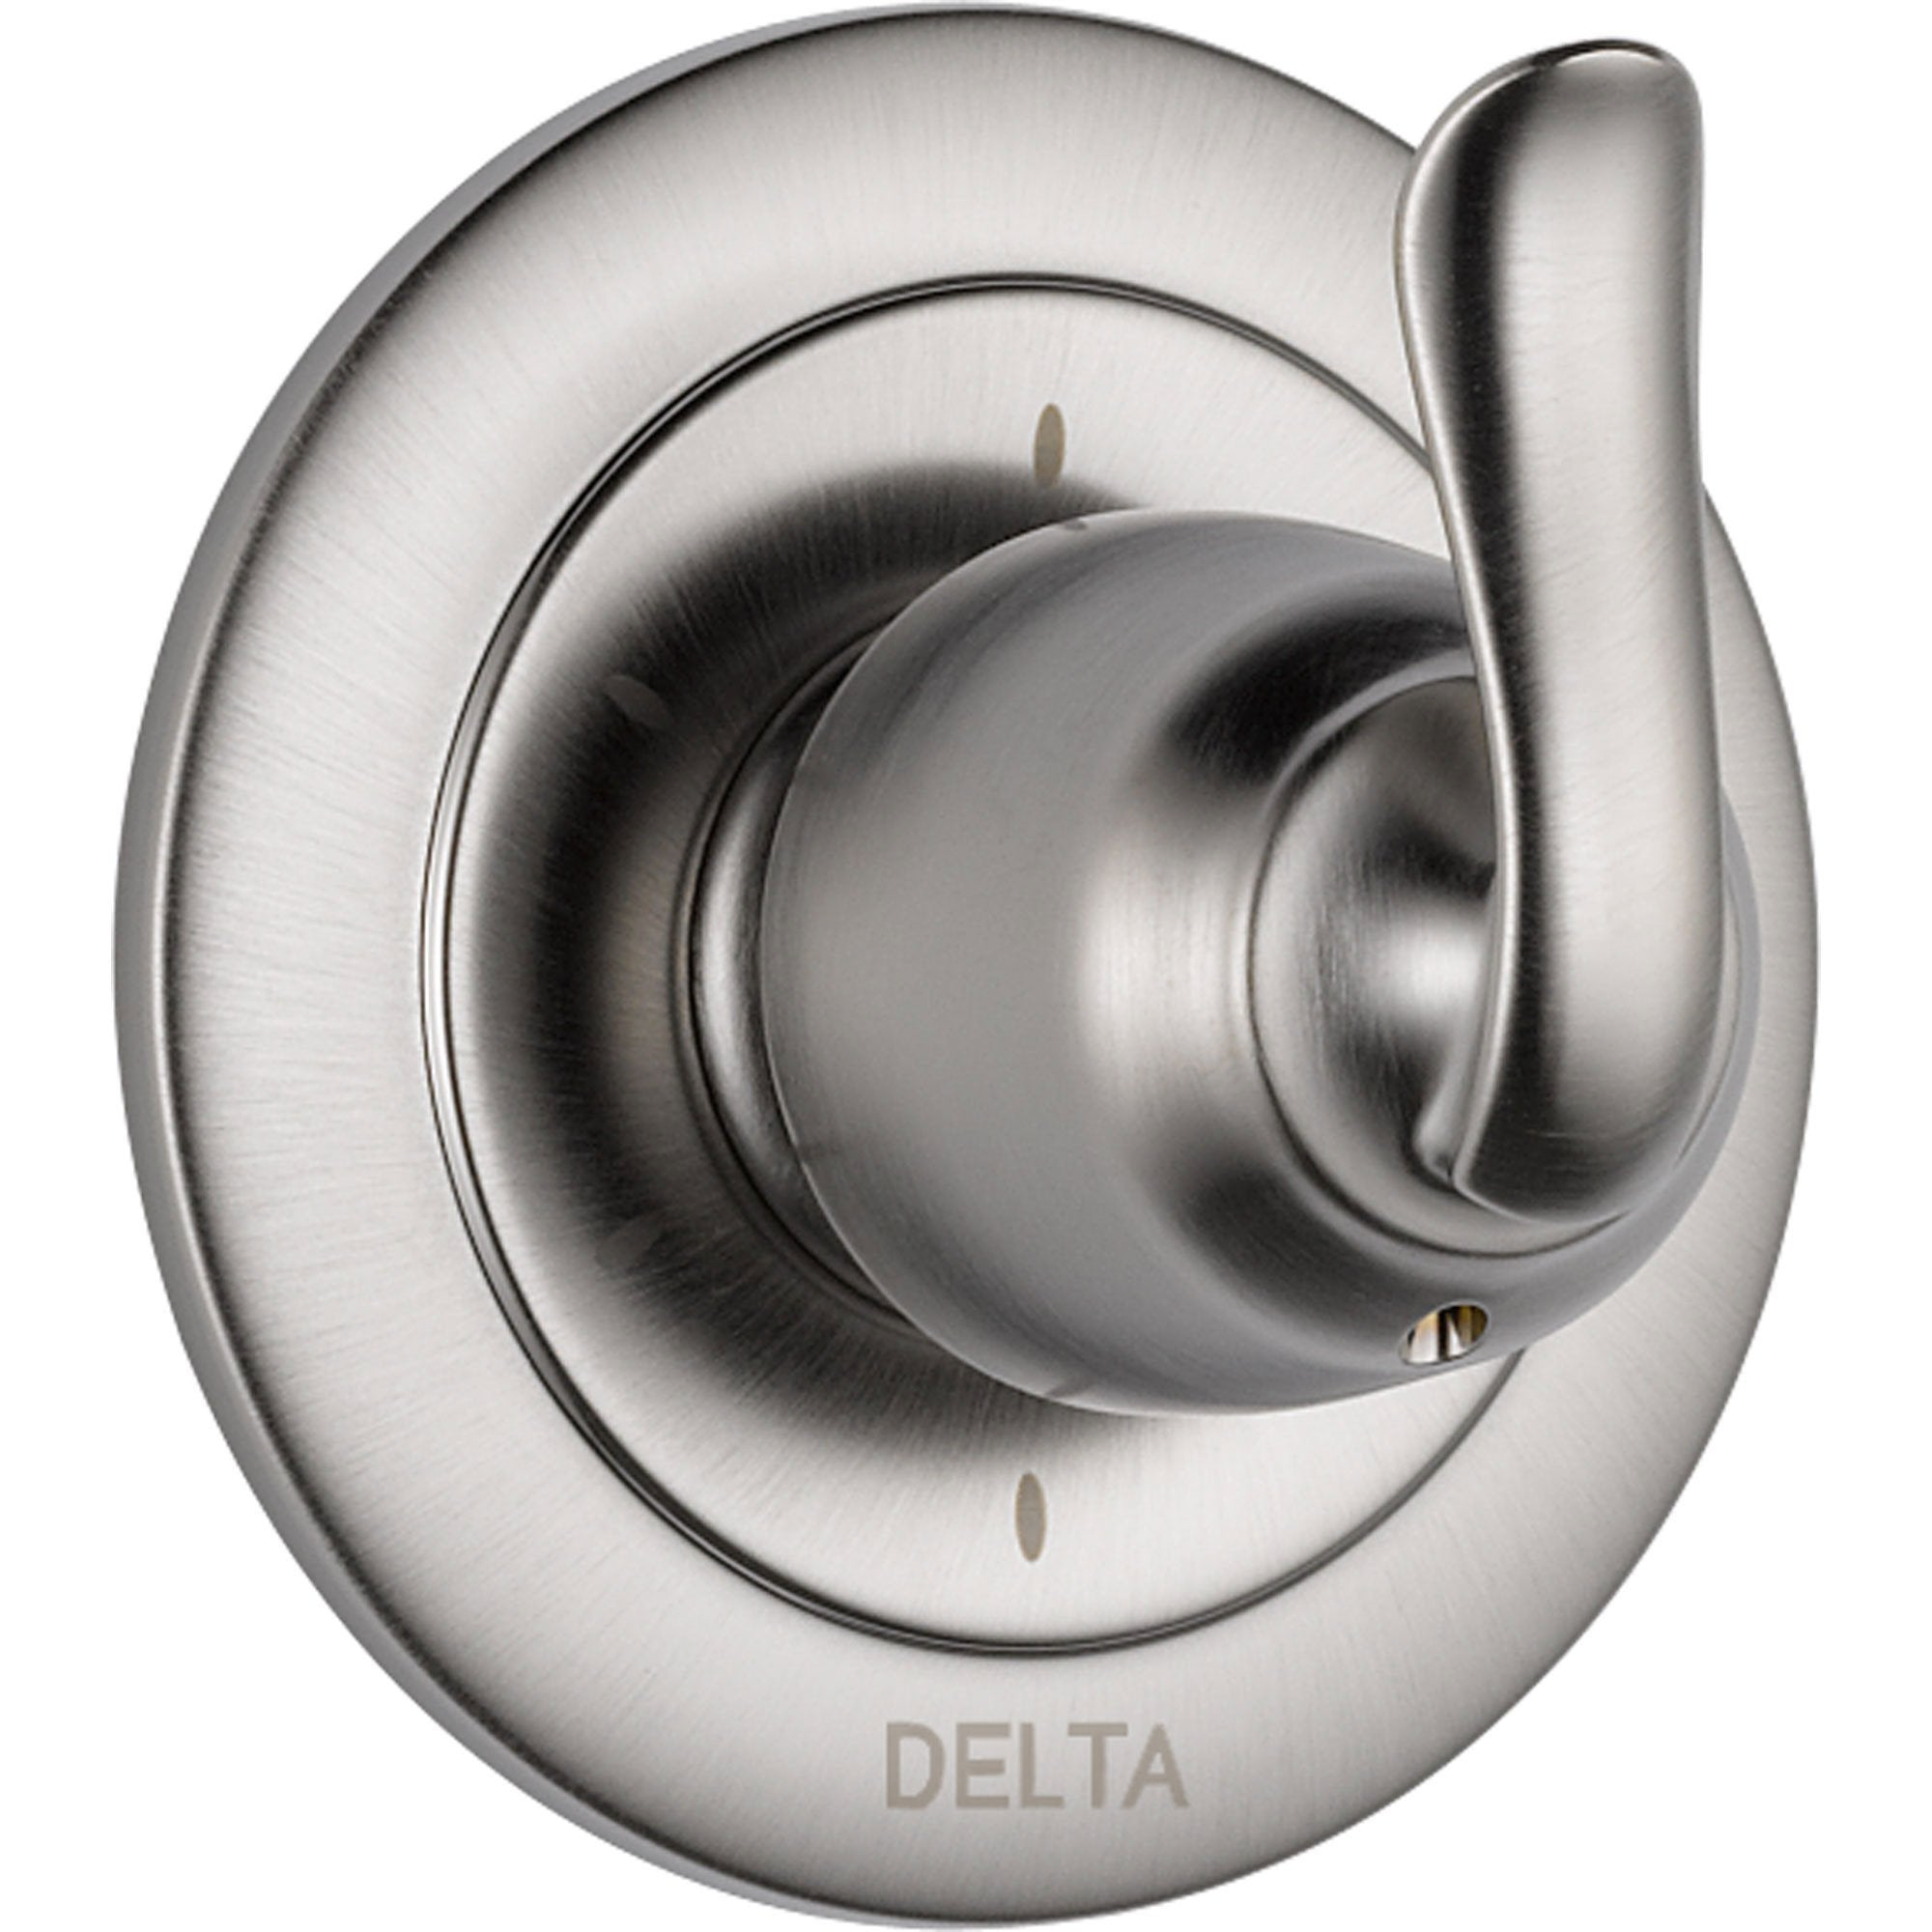 Delta Linden 6-Setting Stainless Steel Finish Shower Diverter Trim Kit 555688